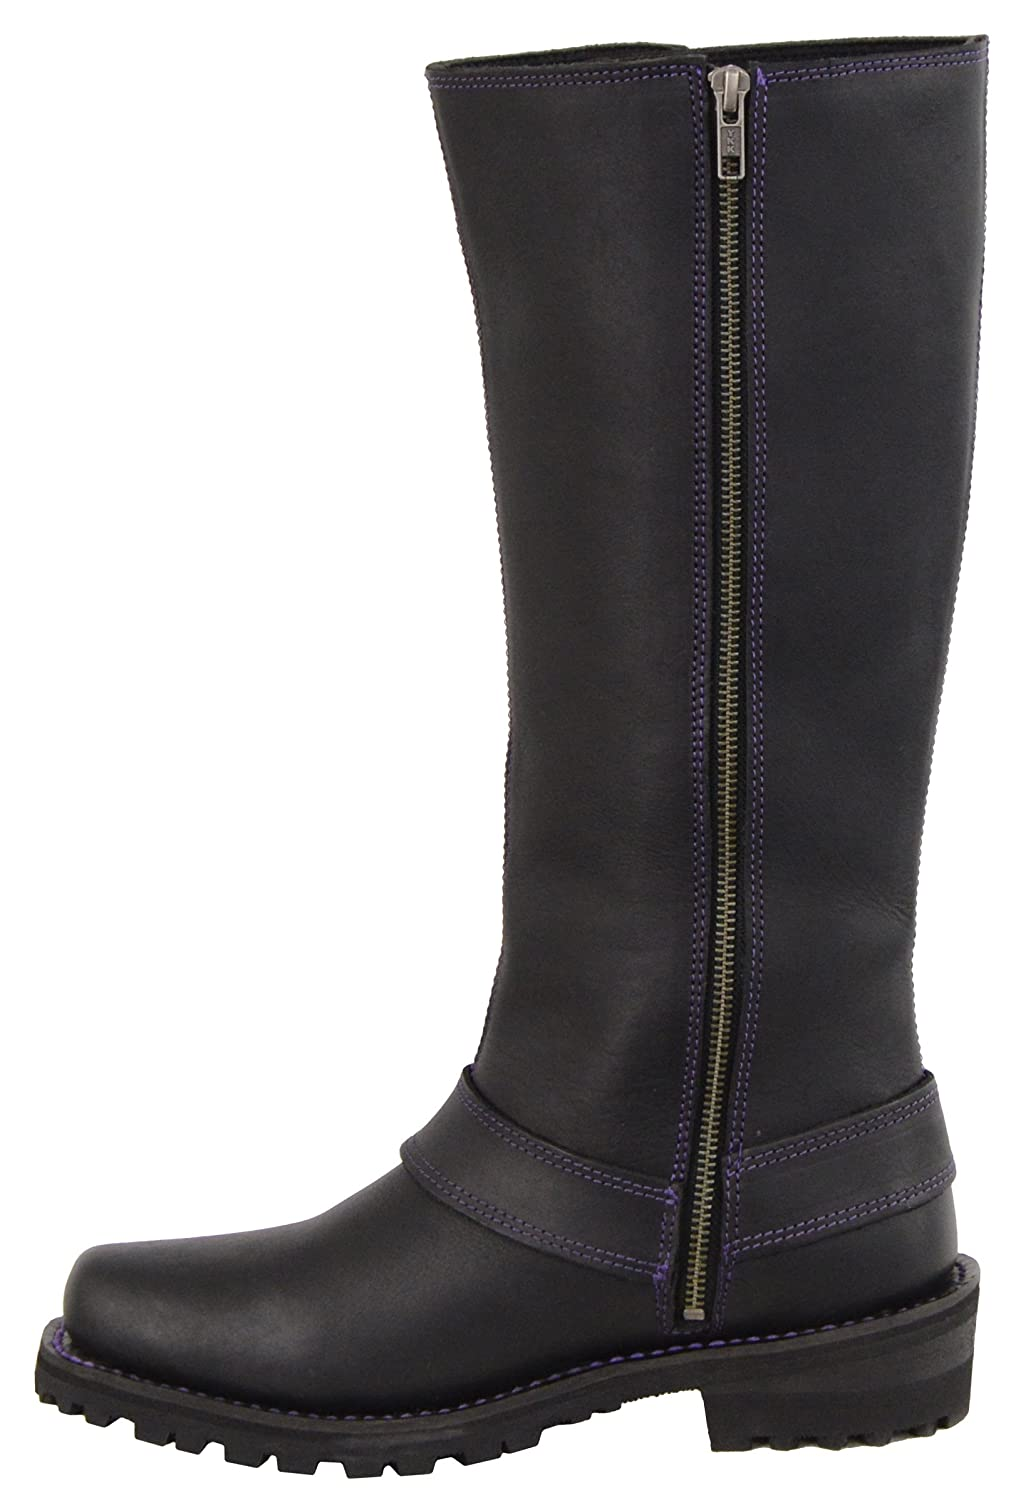 Milwaukee Leather Womens Leather Harness Boots with Purple Accent Loops Black//Purple, Size 7.5//14